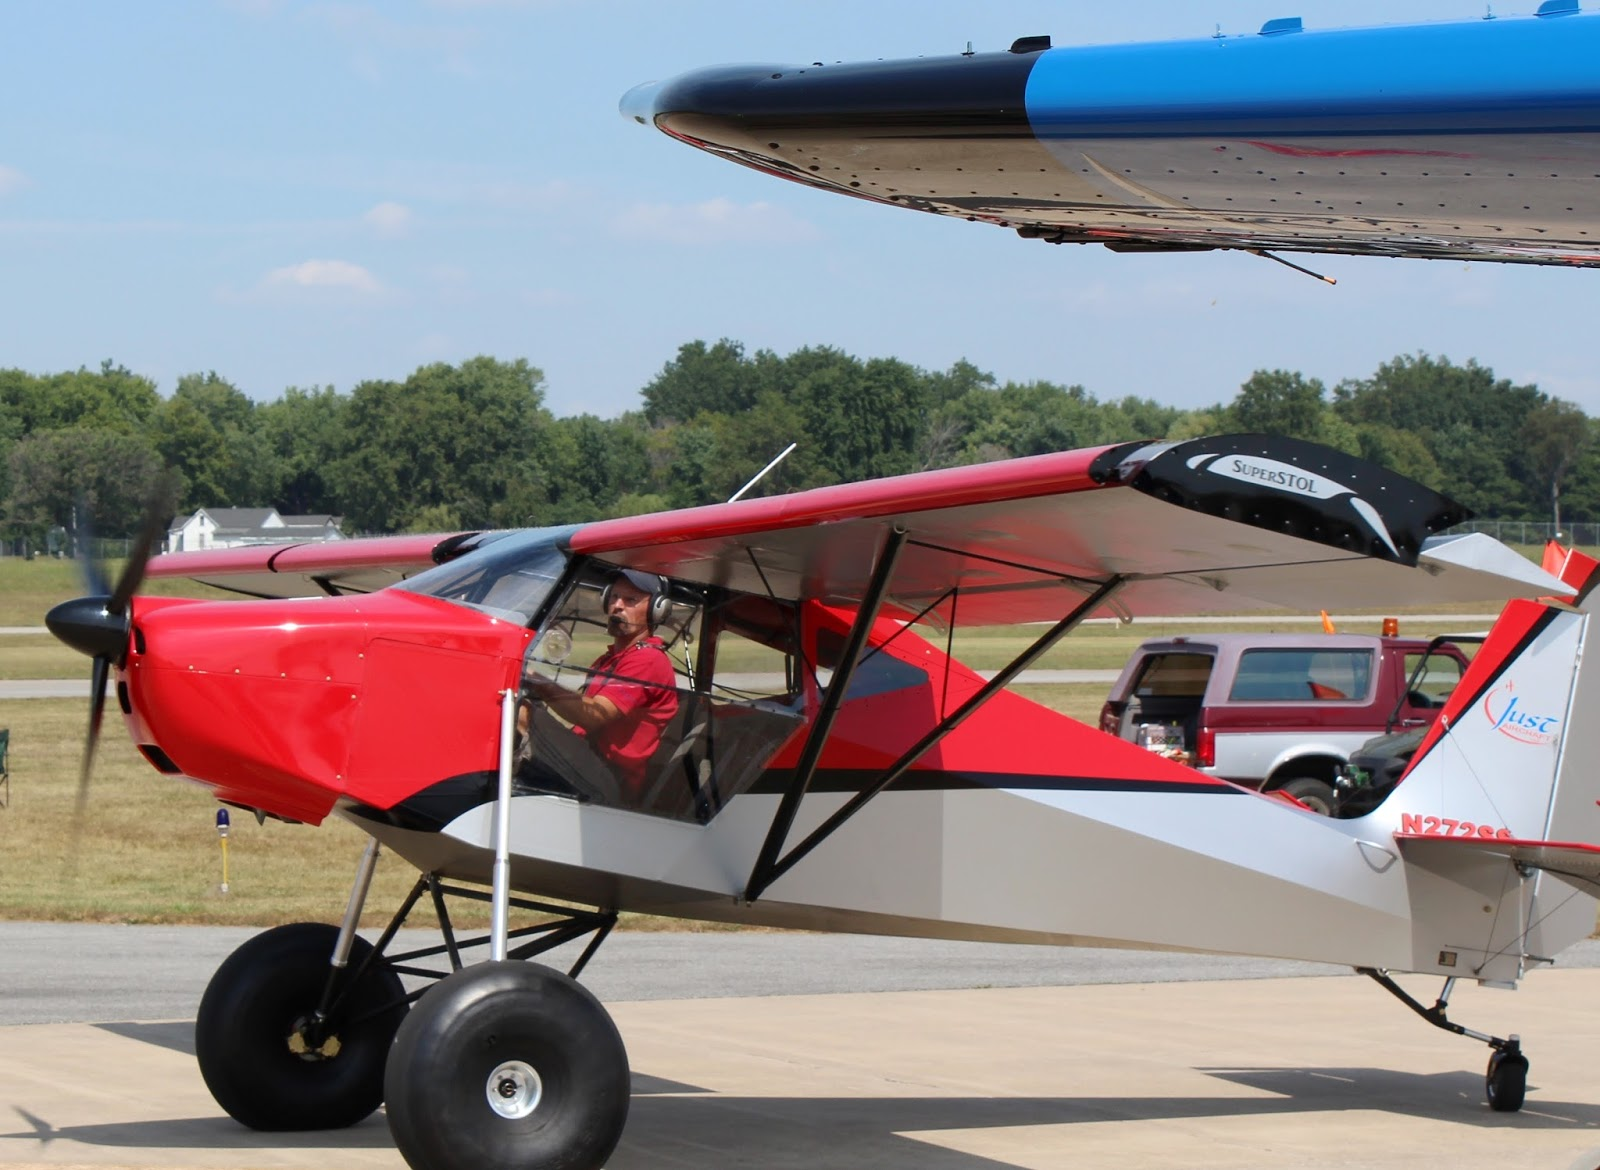 stol kit plane ~ the aero experience variety of light sport aircraft